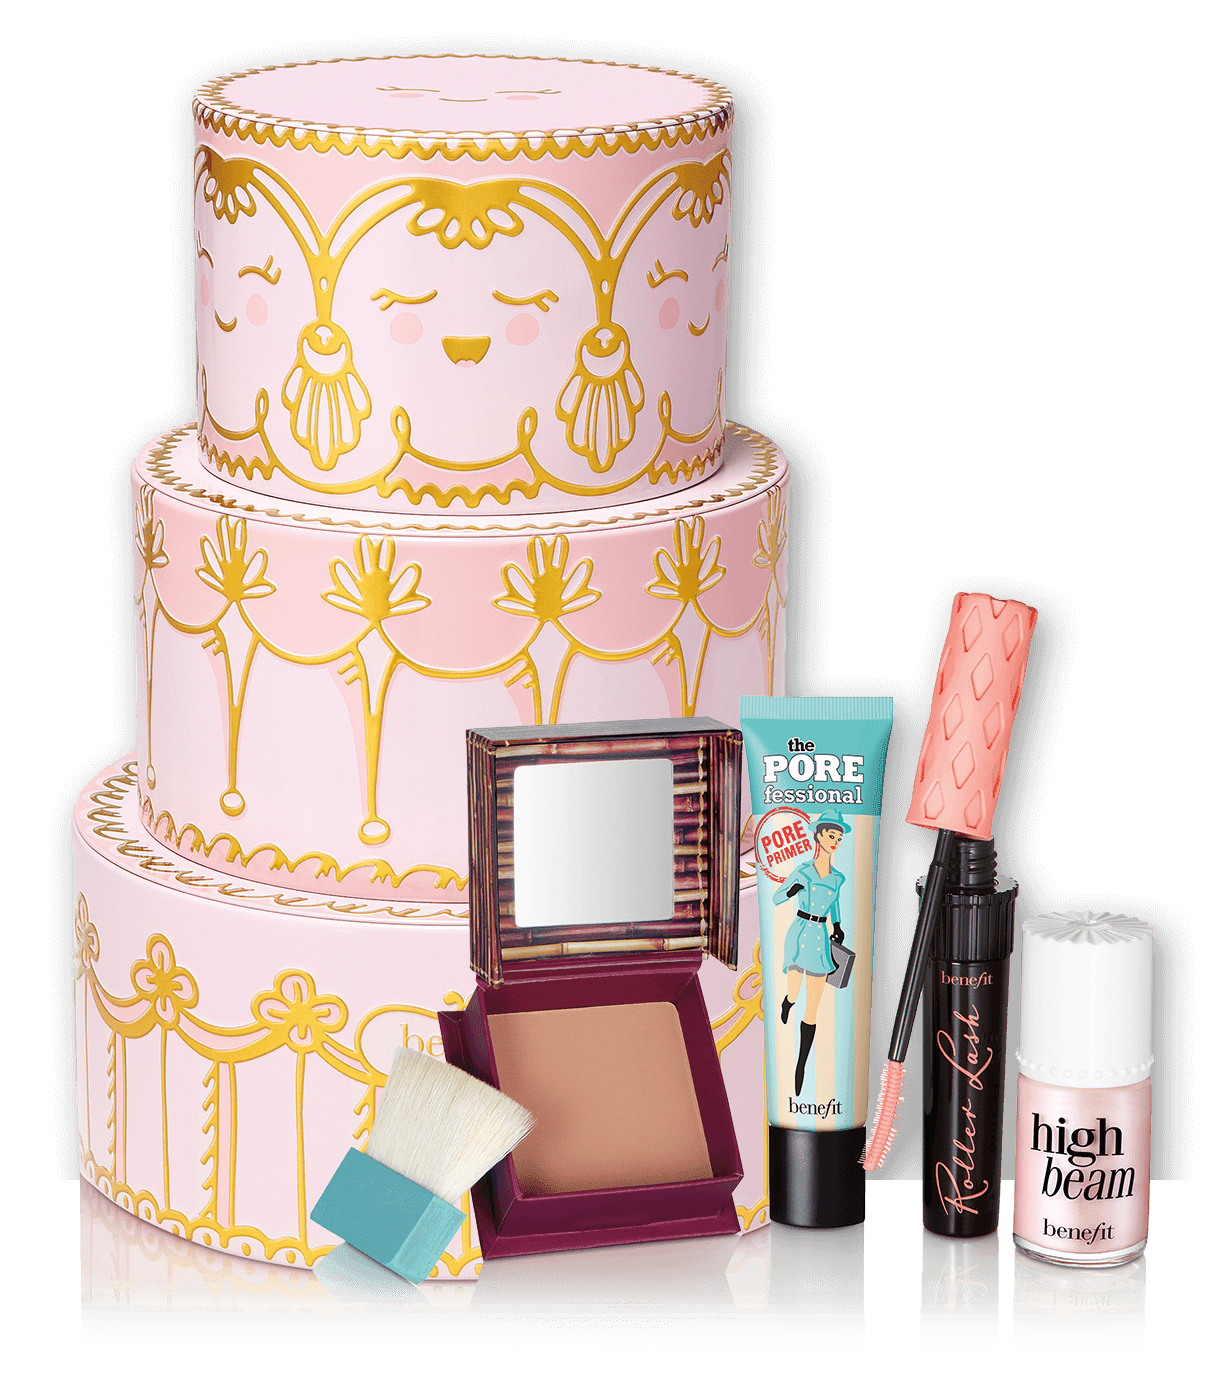 8daf3e1fc9b Gimme Some Sugar holiday set comes with four bestselling Benefit products  at an amazing deal.